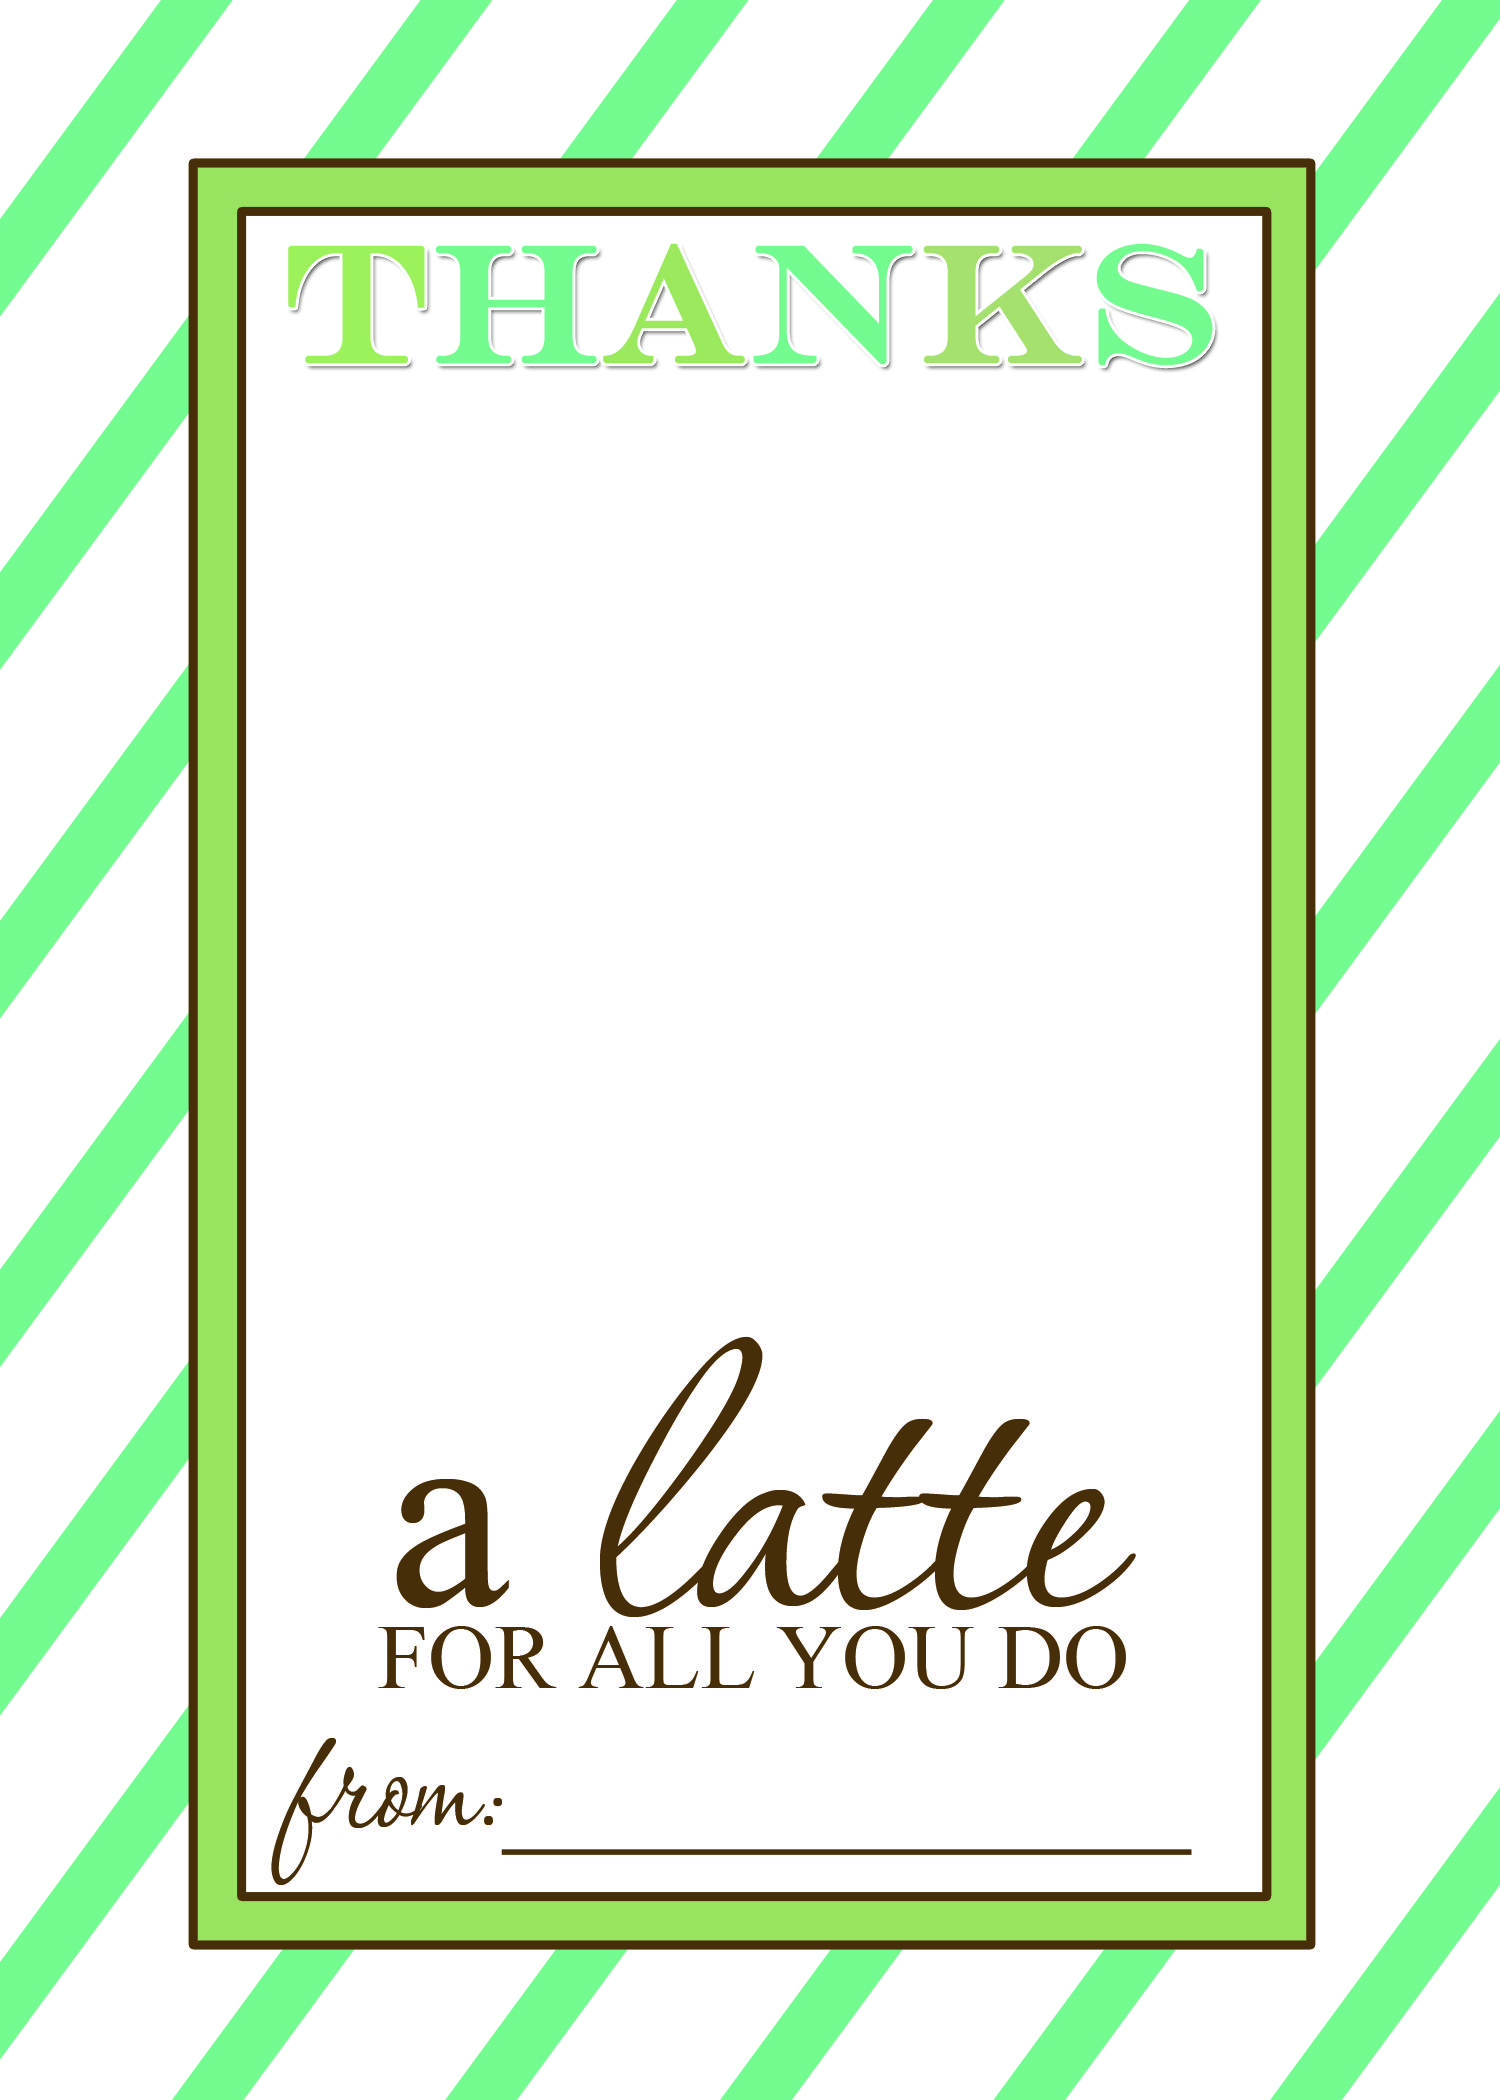 Thanks A Latte Free Printable Gift Card Holder Teacher Gift | Craft - Thanks A Latte Free Printable